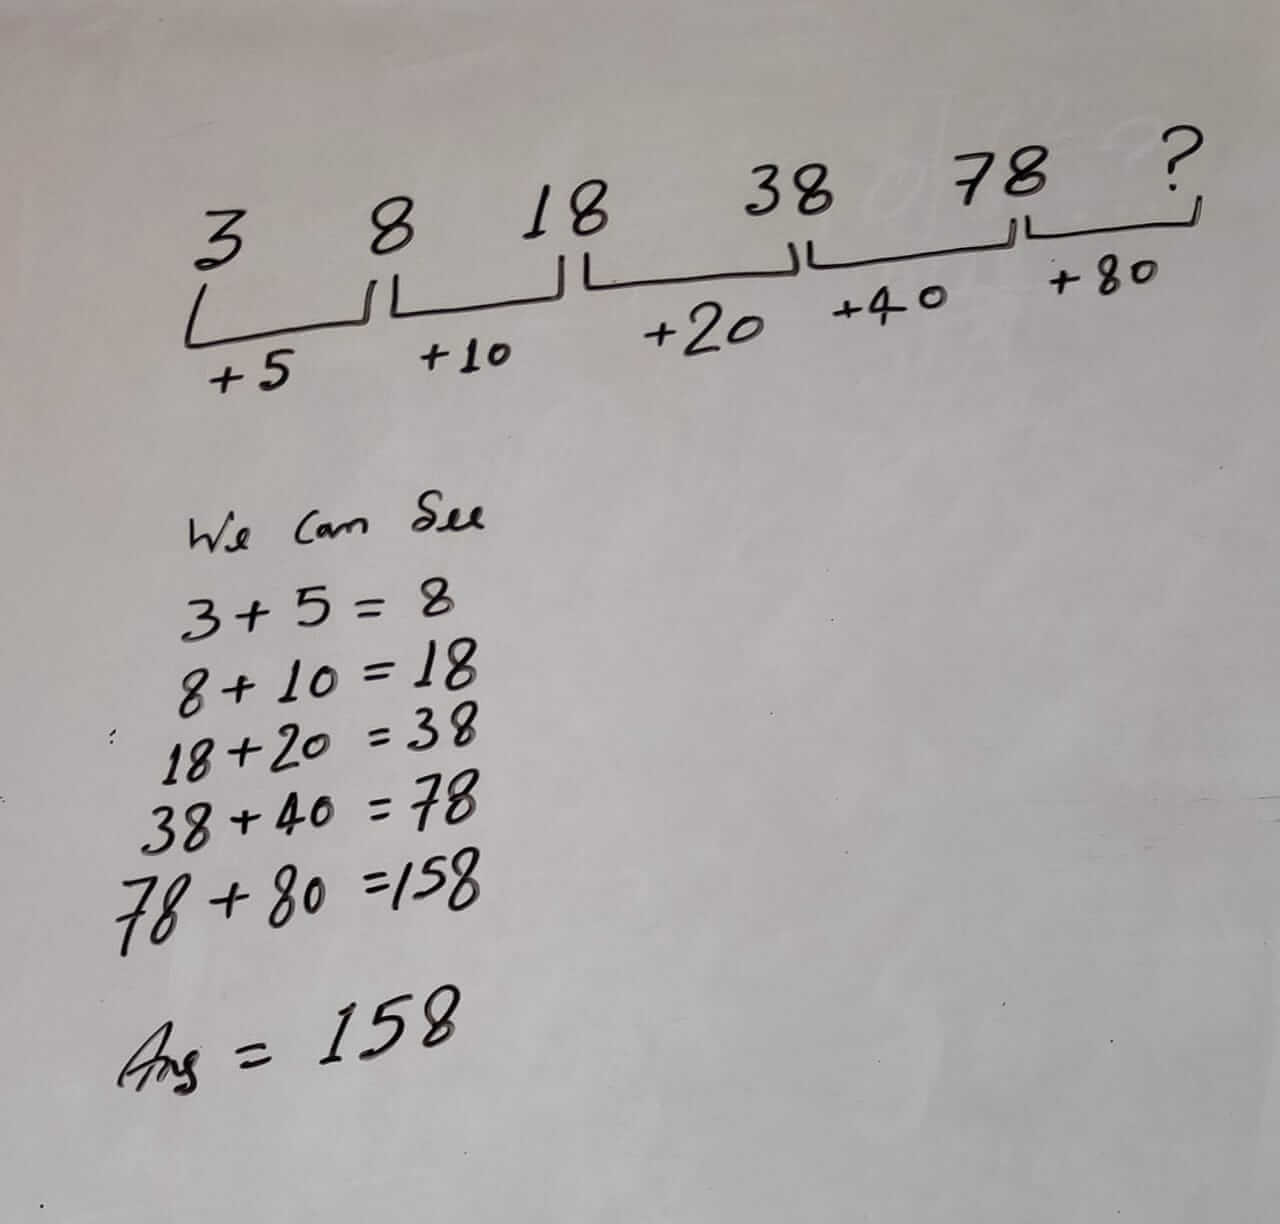 Find the Missing Number in the Series 3 8 18 38 78 ...